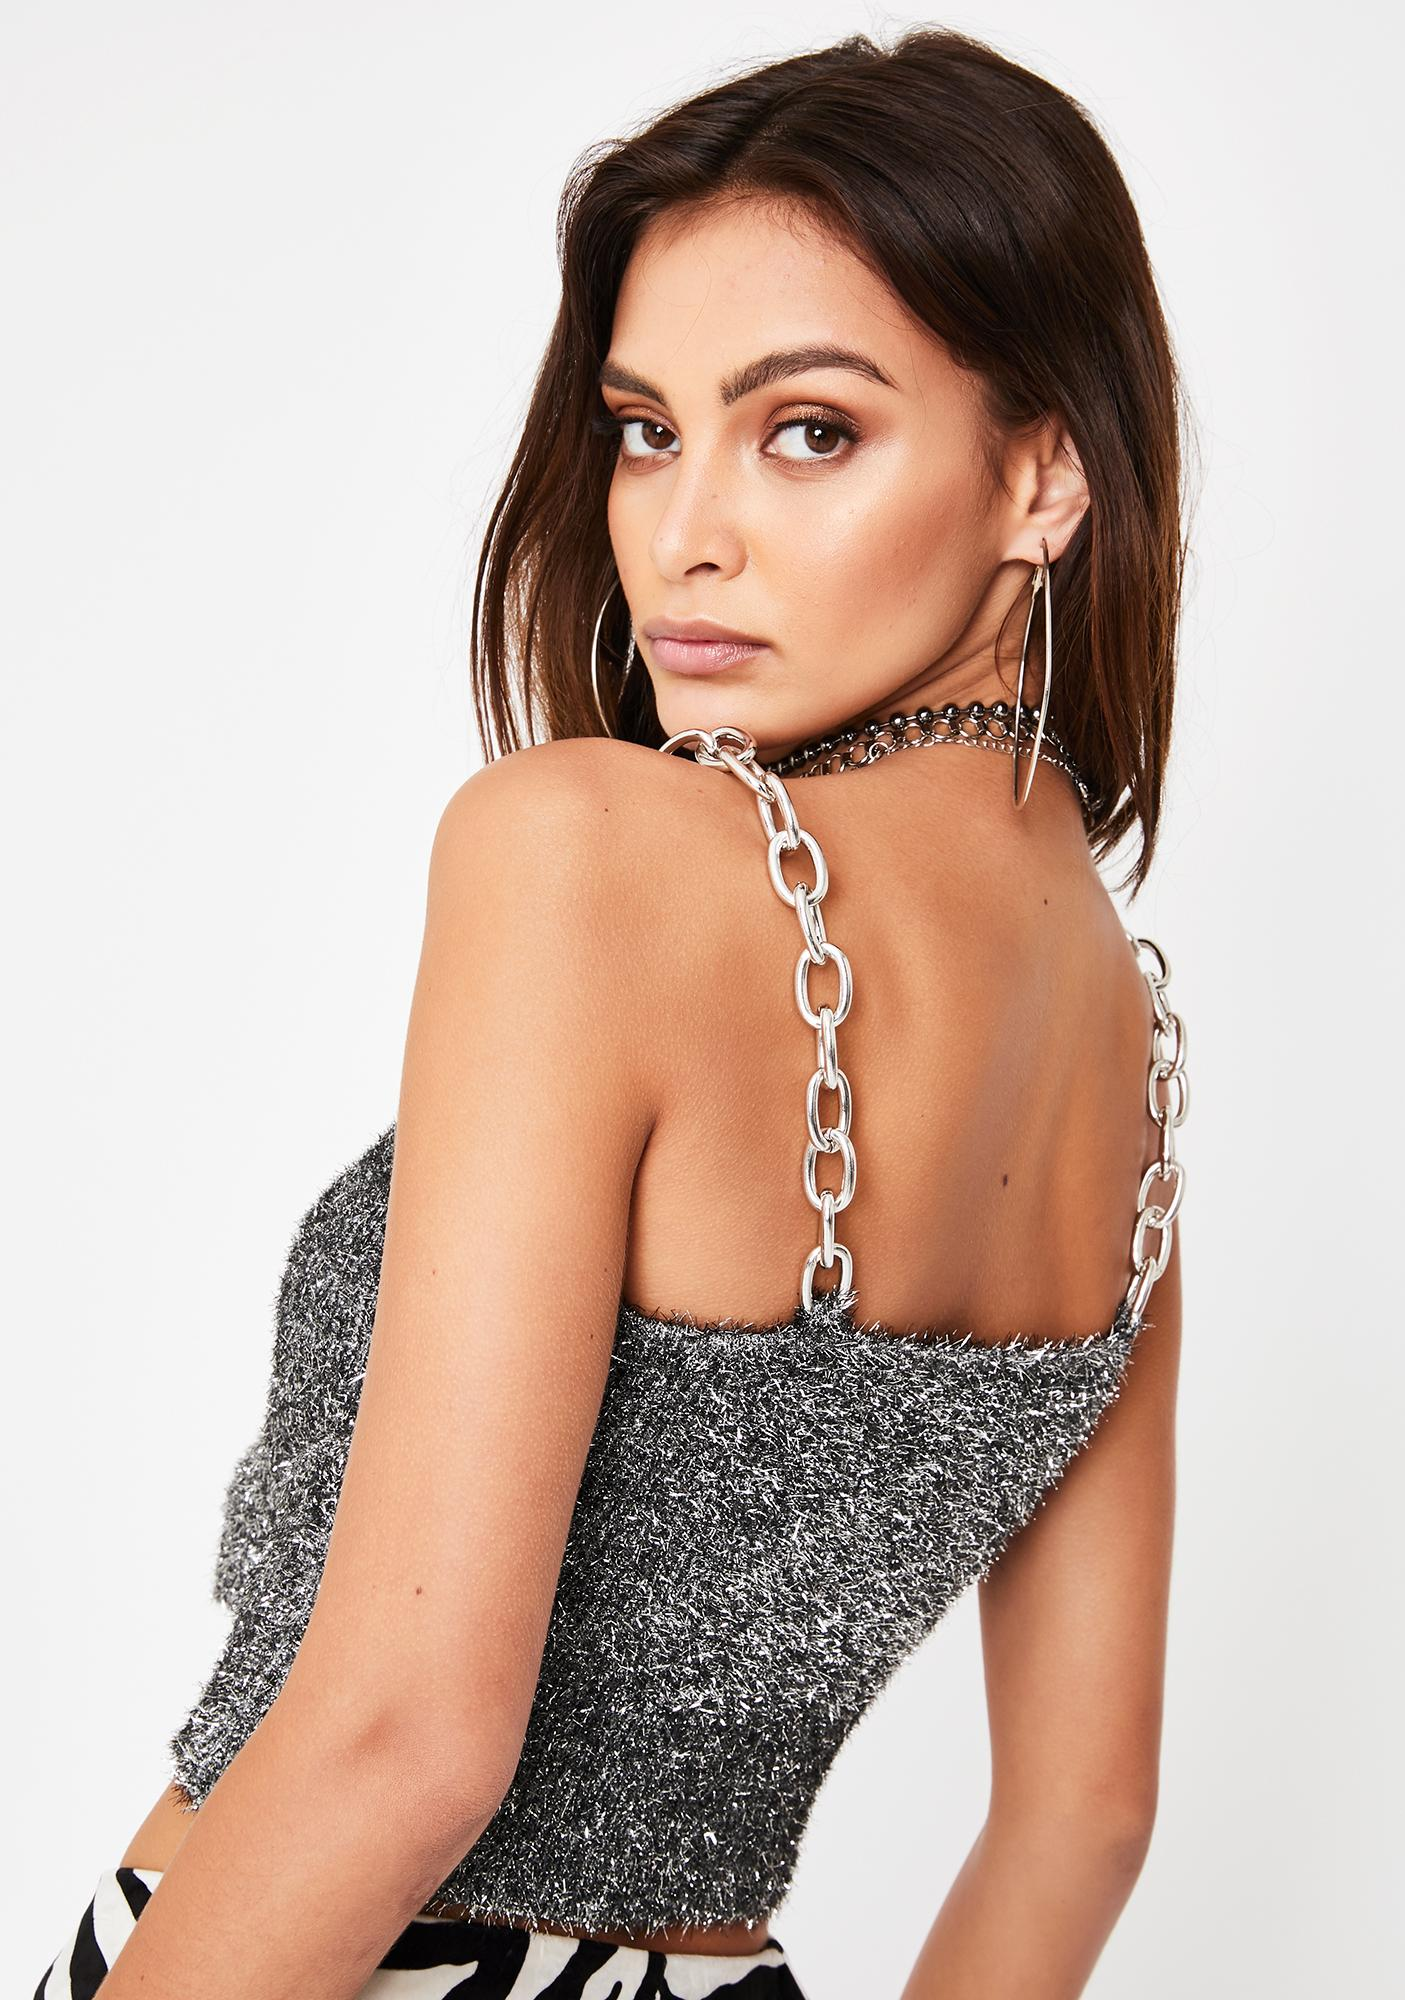 The Ragged Priest Charm Chain Cami Top